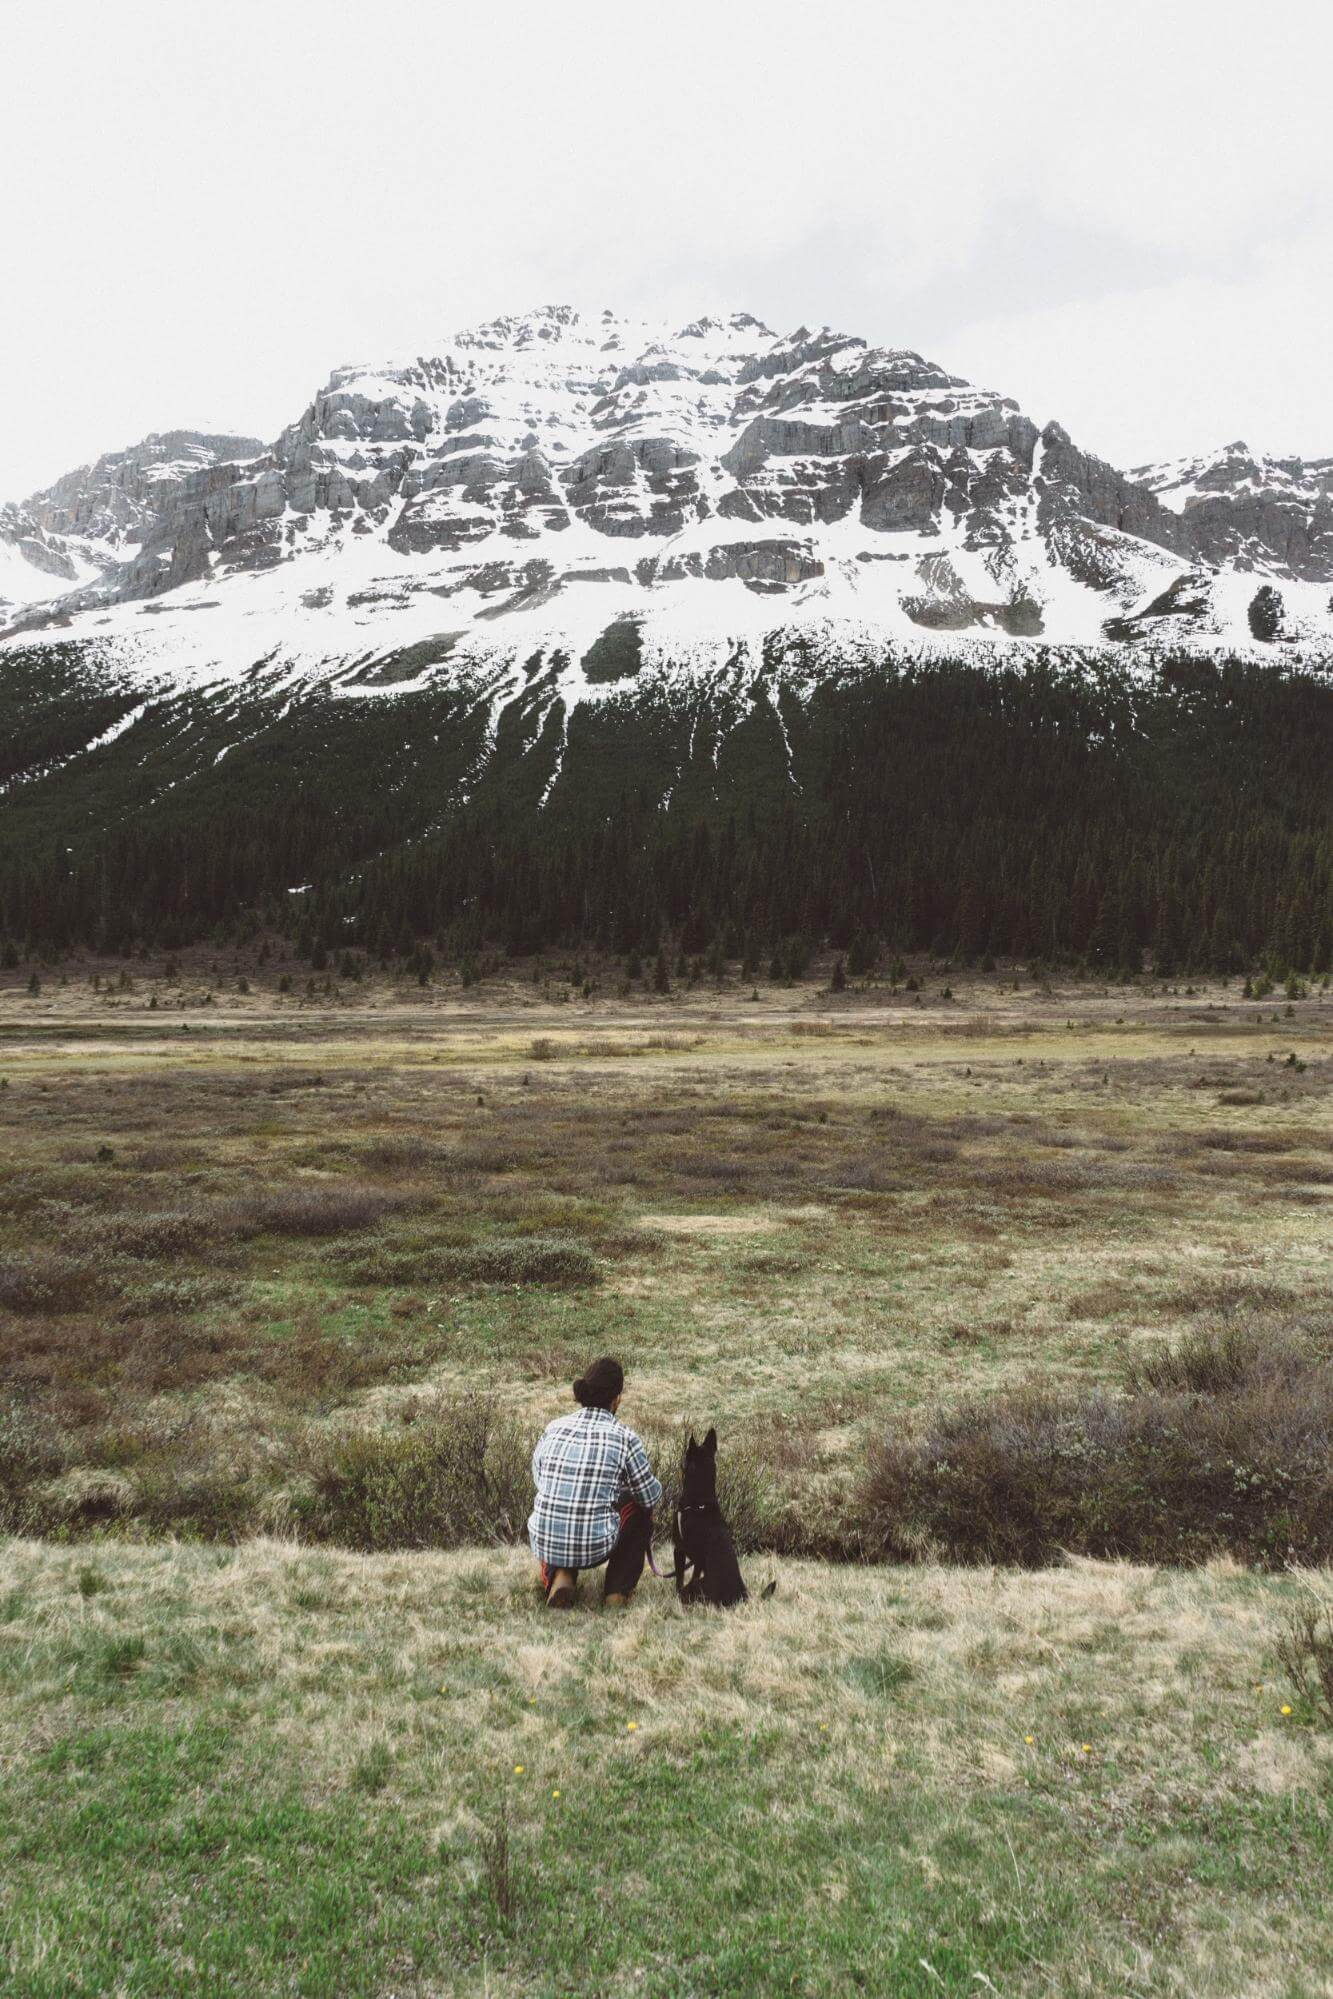 A man and a dog looking at the mountain